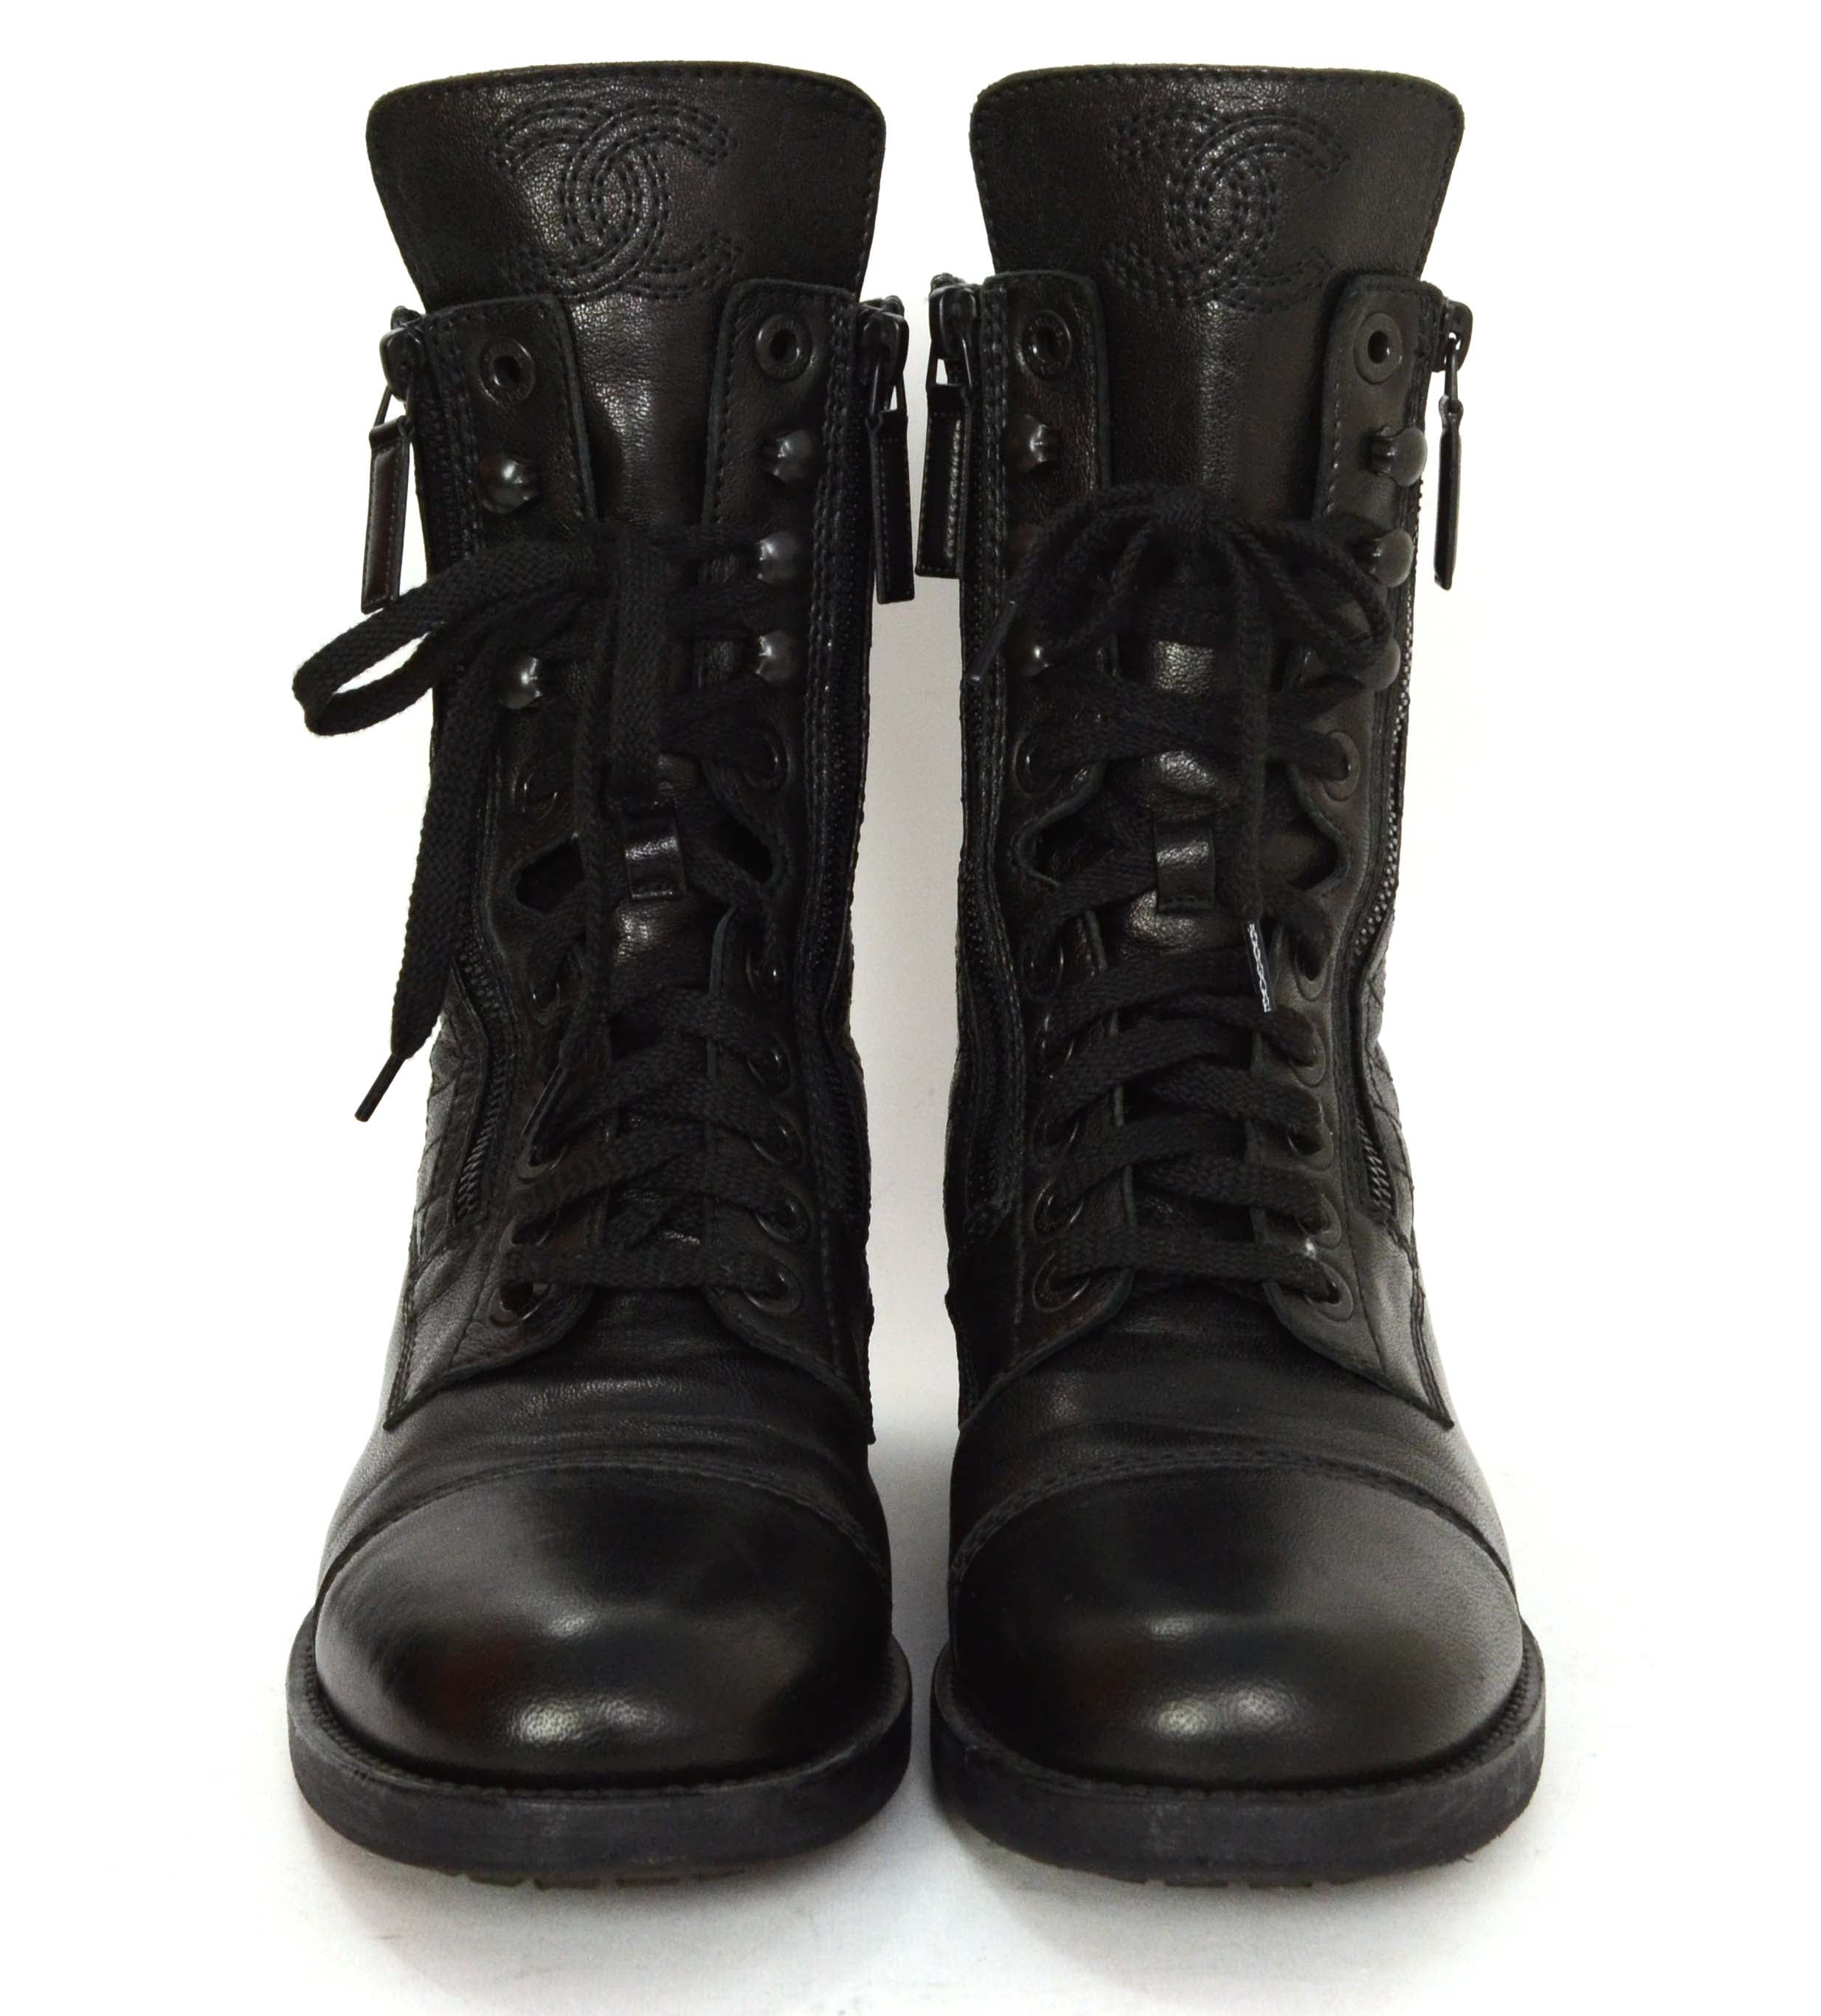 7d2f8be862002 Chanel Black Leather Lace Up Combat Boots sz 39 at 1stdibs